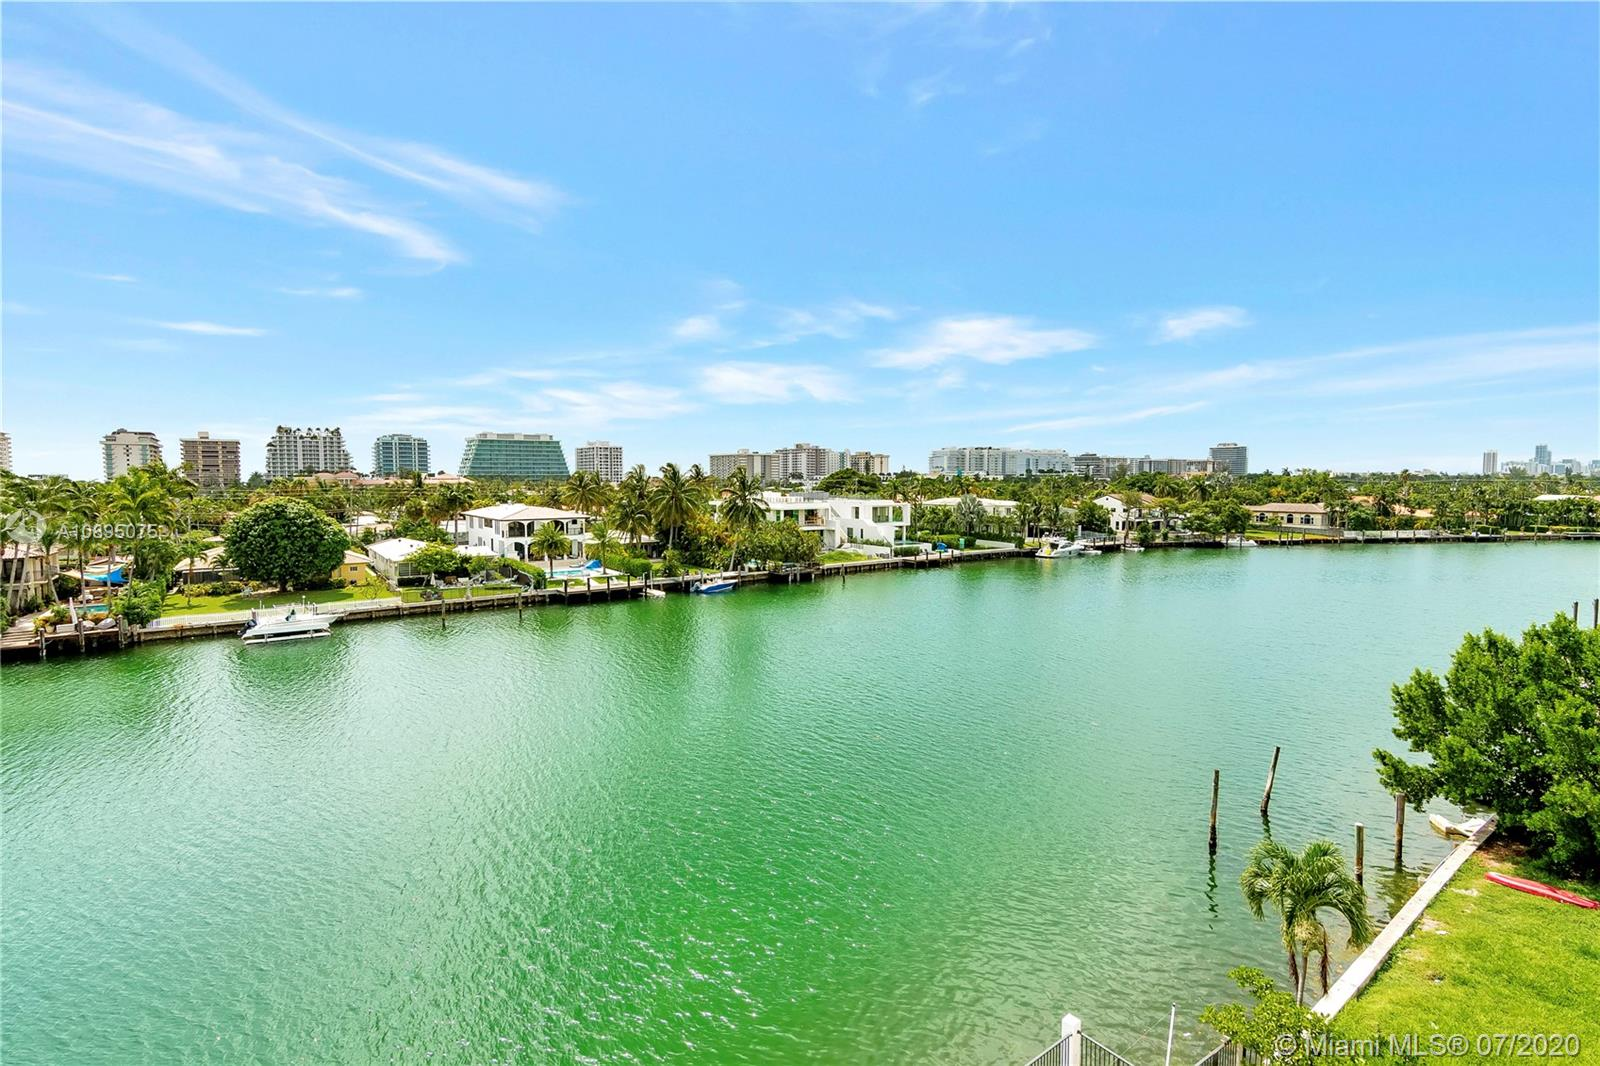 """Welcome to your new and fabulous home with breathtaking Bay, Canal, Ocean and City views! Location, location, location!!! This spectacular 2bed/2.5baths residence, just shy of 1700 sqft of living area is strategically located in desirable Bay Harbor Islands, one of the best School Districts in Dade County, Fl. with """"A"""" rated schools such as Ruth Kay Broad Bay Harbor K-8 Center and others, minutes from the beach, restaurants, houses of worship, prestigious-world known Bal Harbour Shops. It comes completely remodeled, move in ready; with travertine marble floors throughout, updated bathrooms and open kitchen, stainless steel appliances, granite countertops, customized lighting, closets, newer window treatments + additional storage space. Offered at $314 per sqft. Definitely a must see!!! One"""